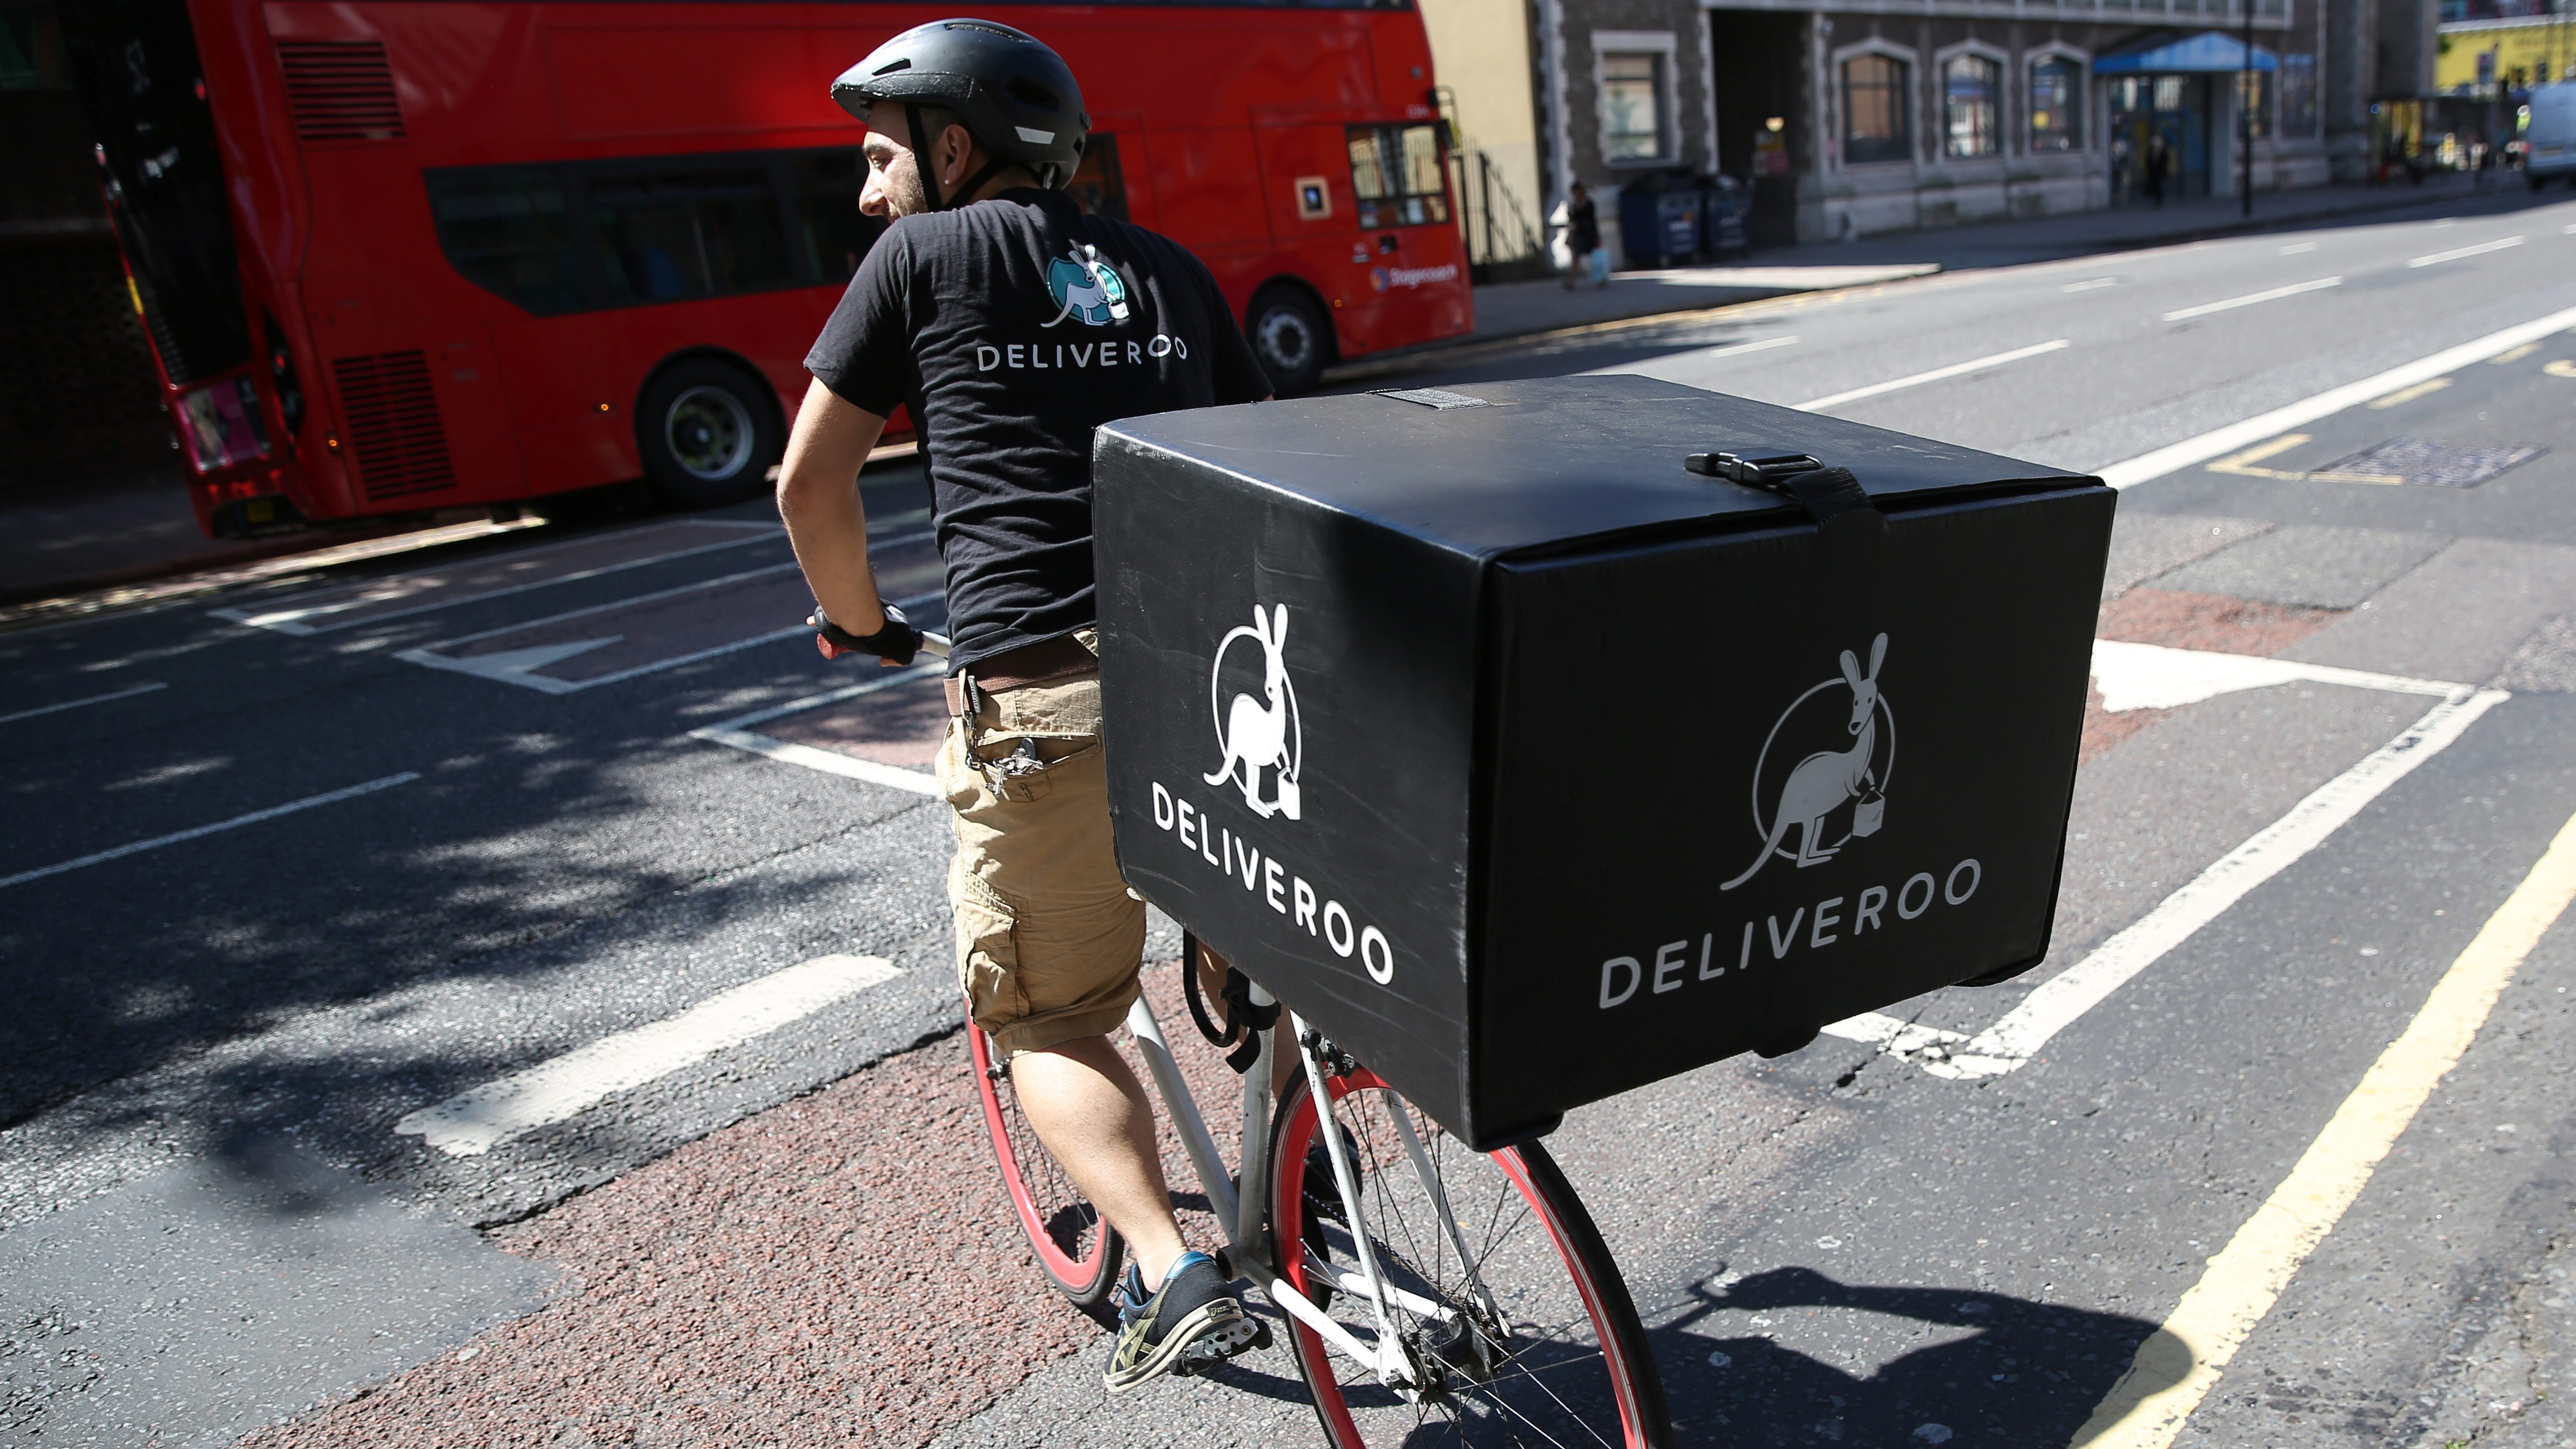 A Deliveroo worker rides his bicycle as he makes a delivery in London, Britain August 15, 2016. REUTERS/Neil Hall  - RTX2KXWH